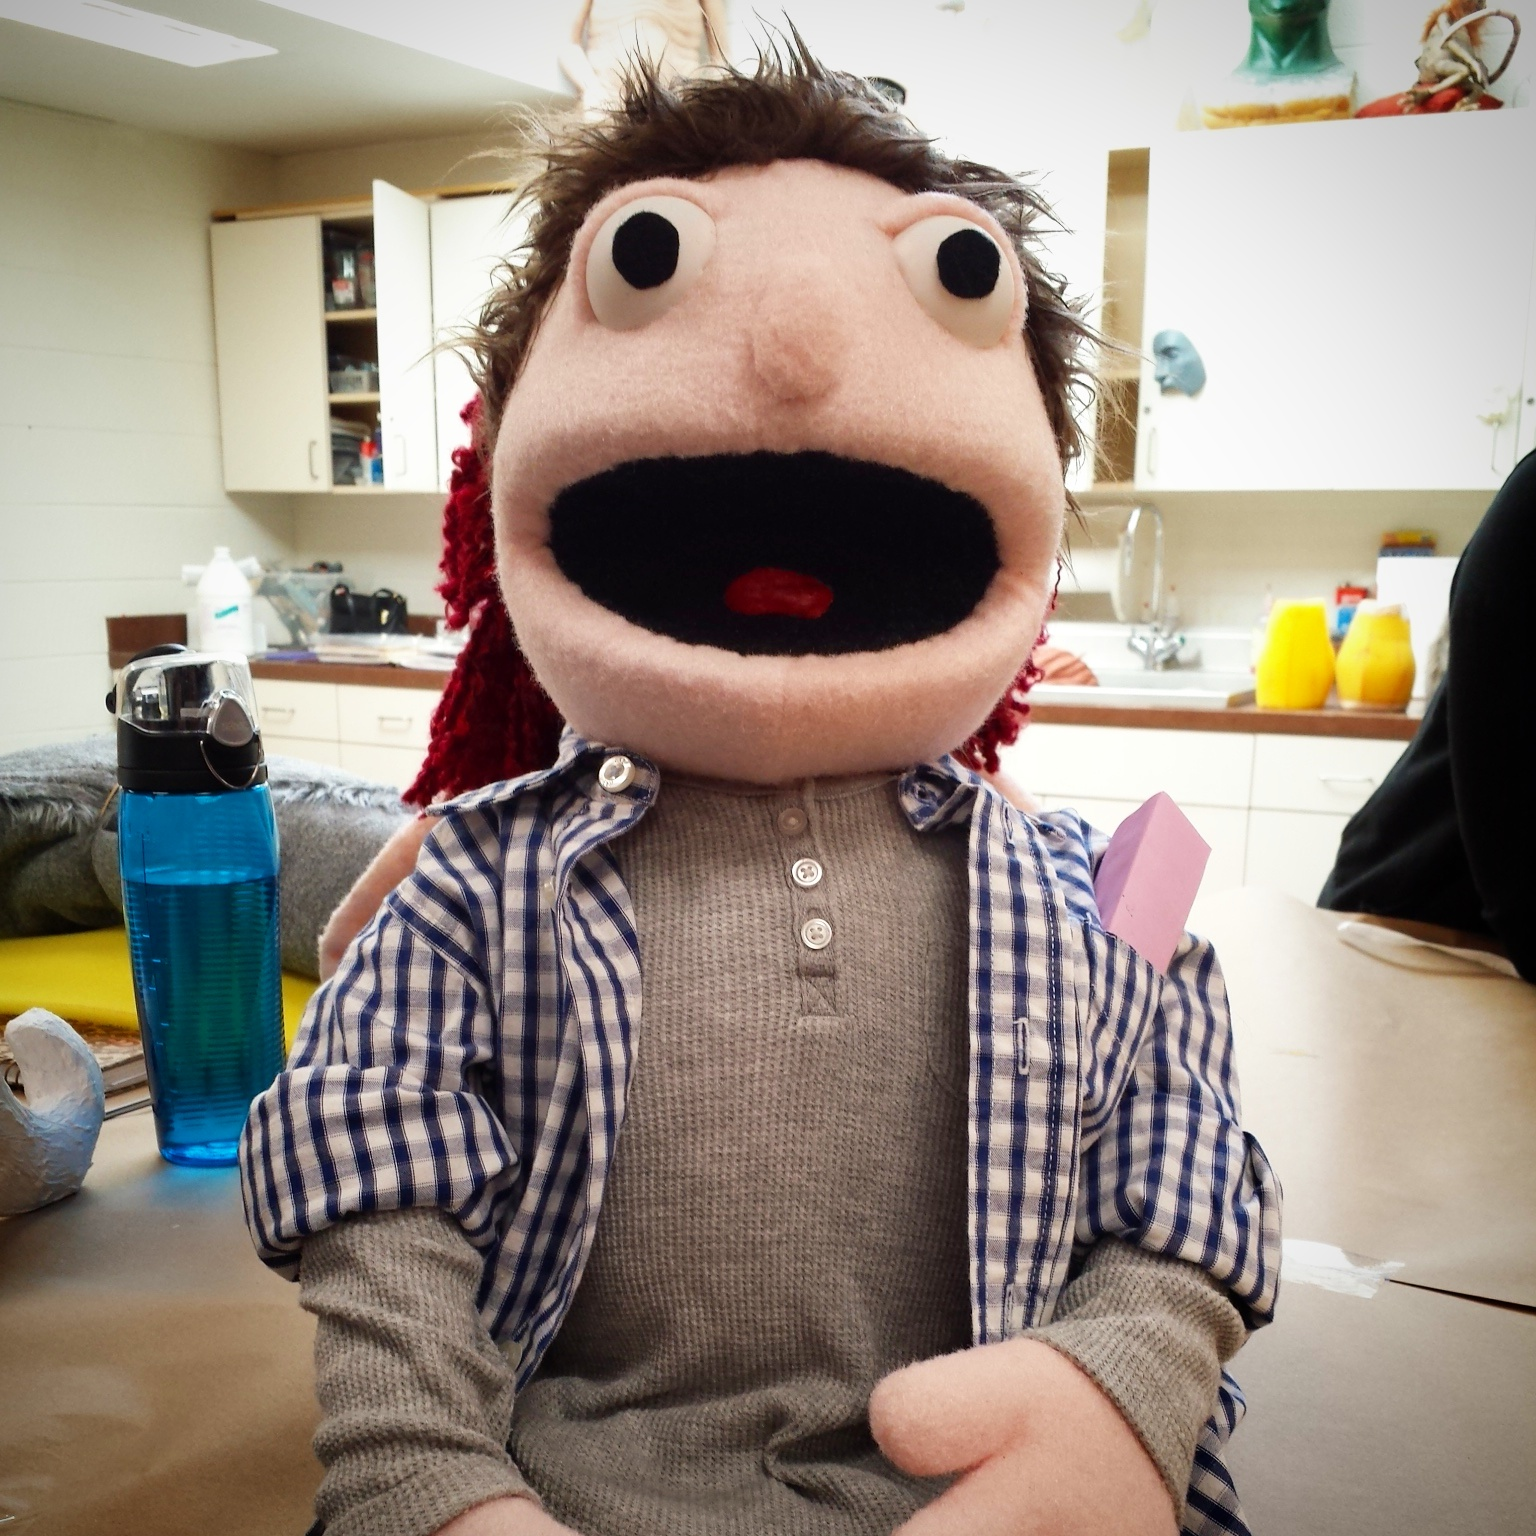 Carl the Puppet. (2015)